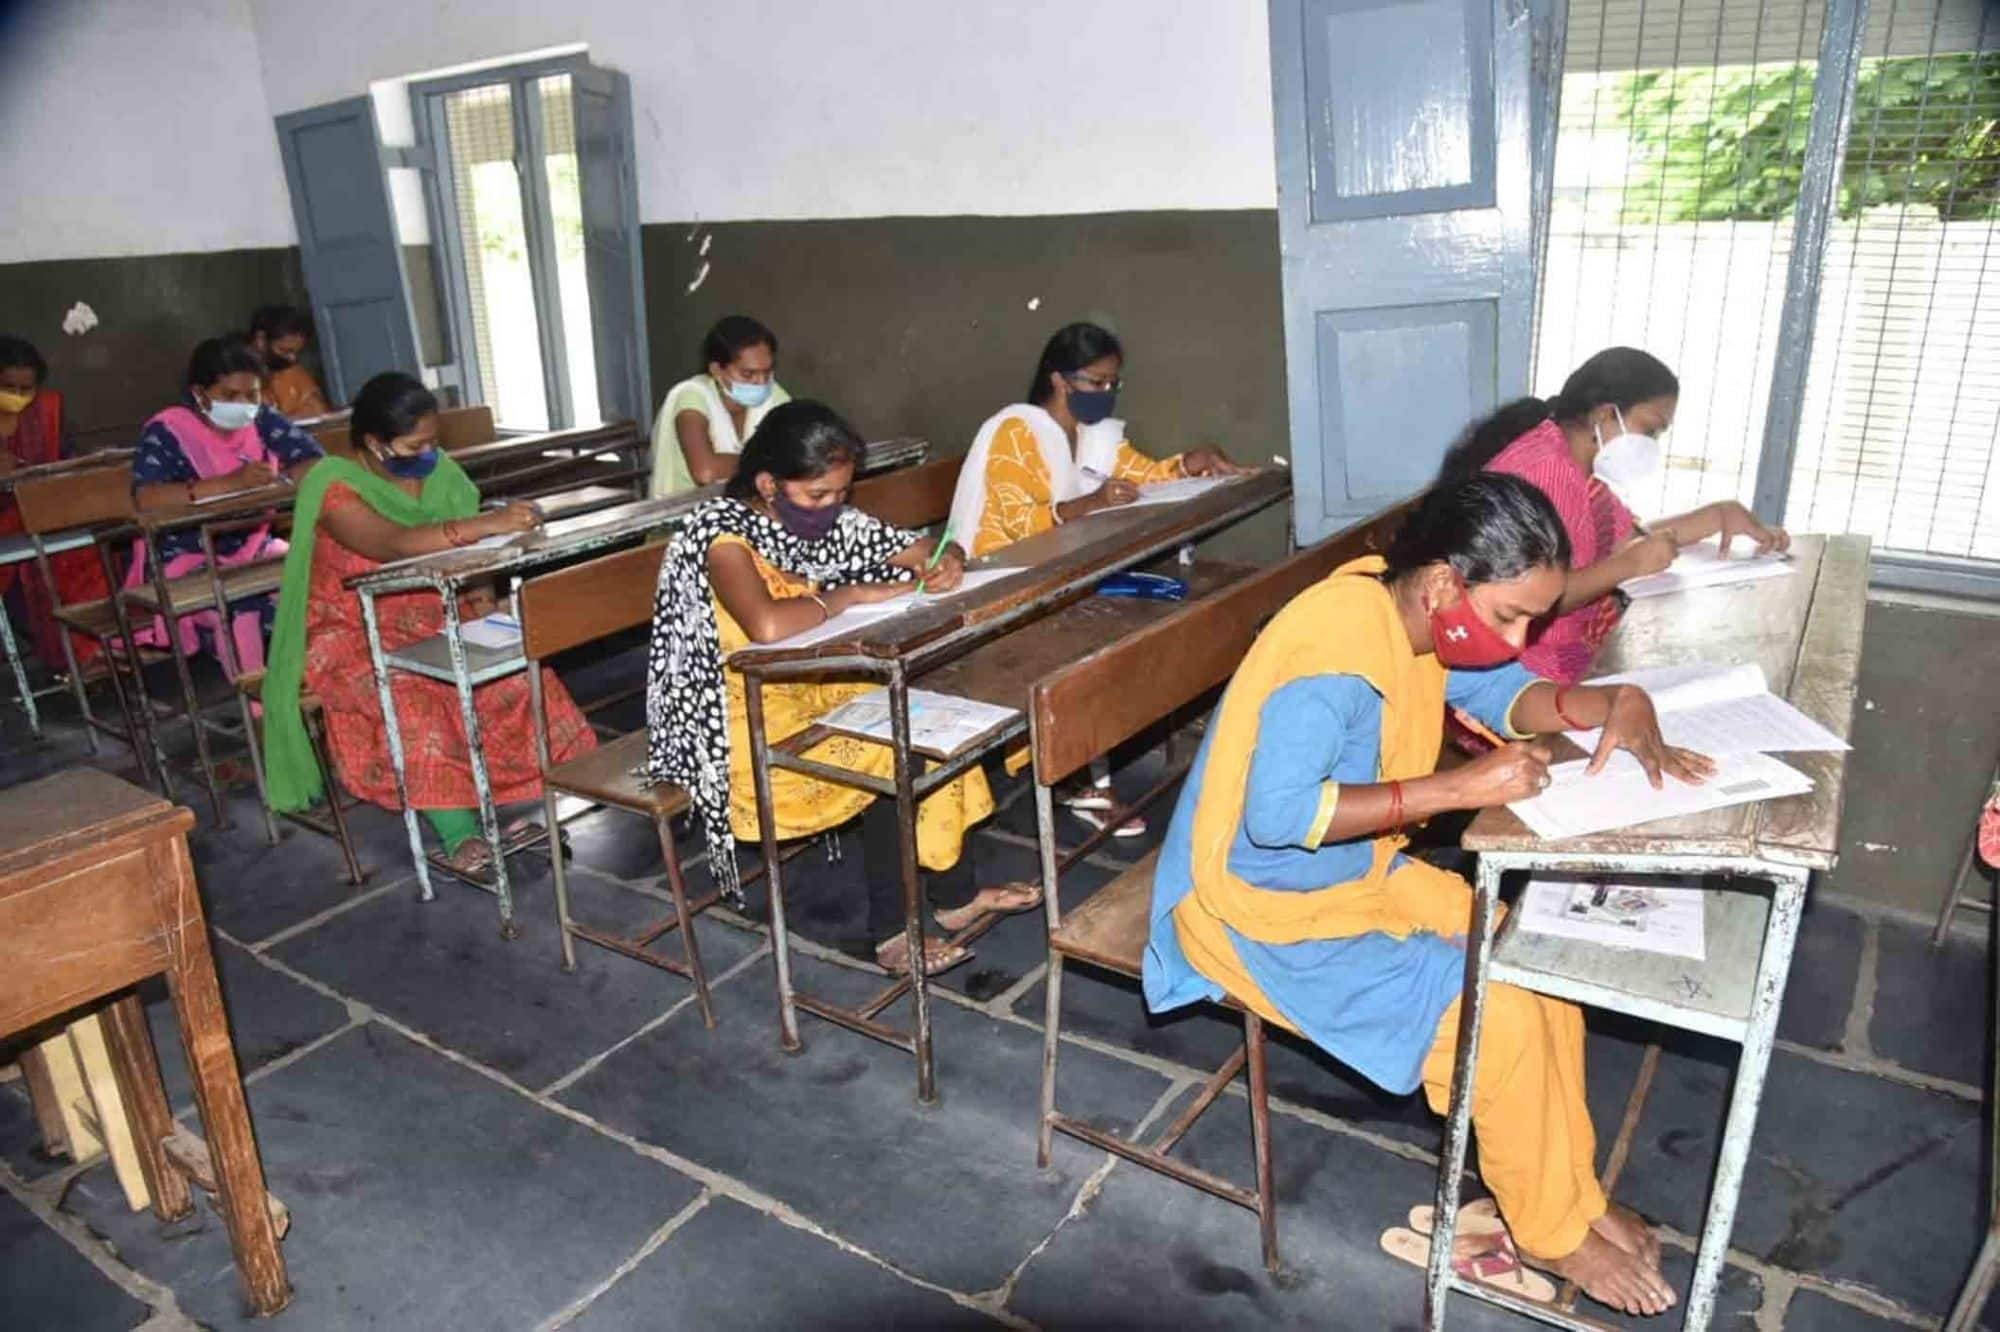 Maharashtra Class 12 Board Exams 2021: Govt To Take Decision In A Day Or Two, Says Education Minister Gaikwad